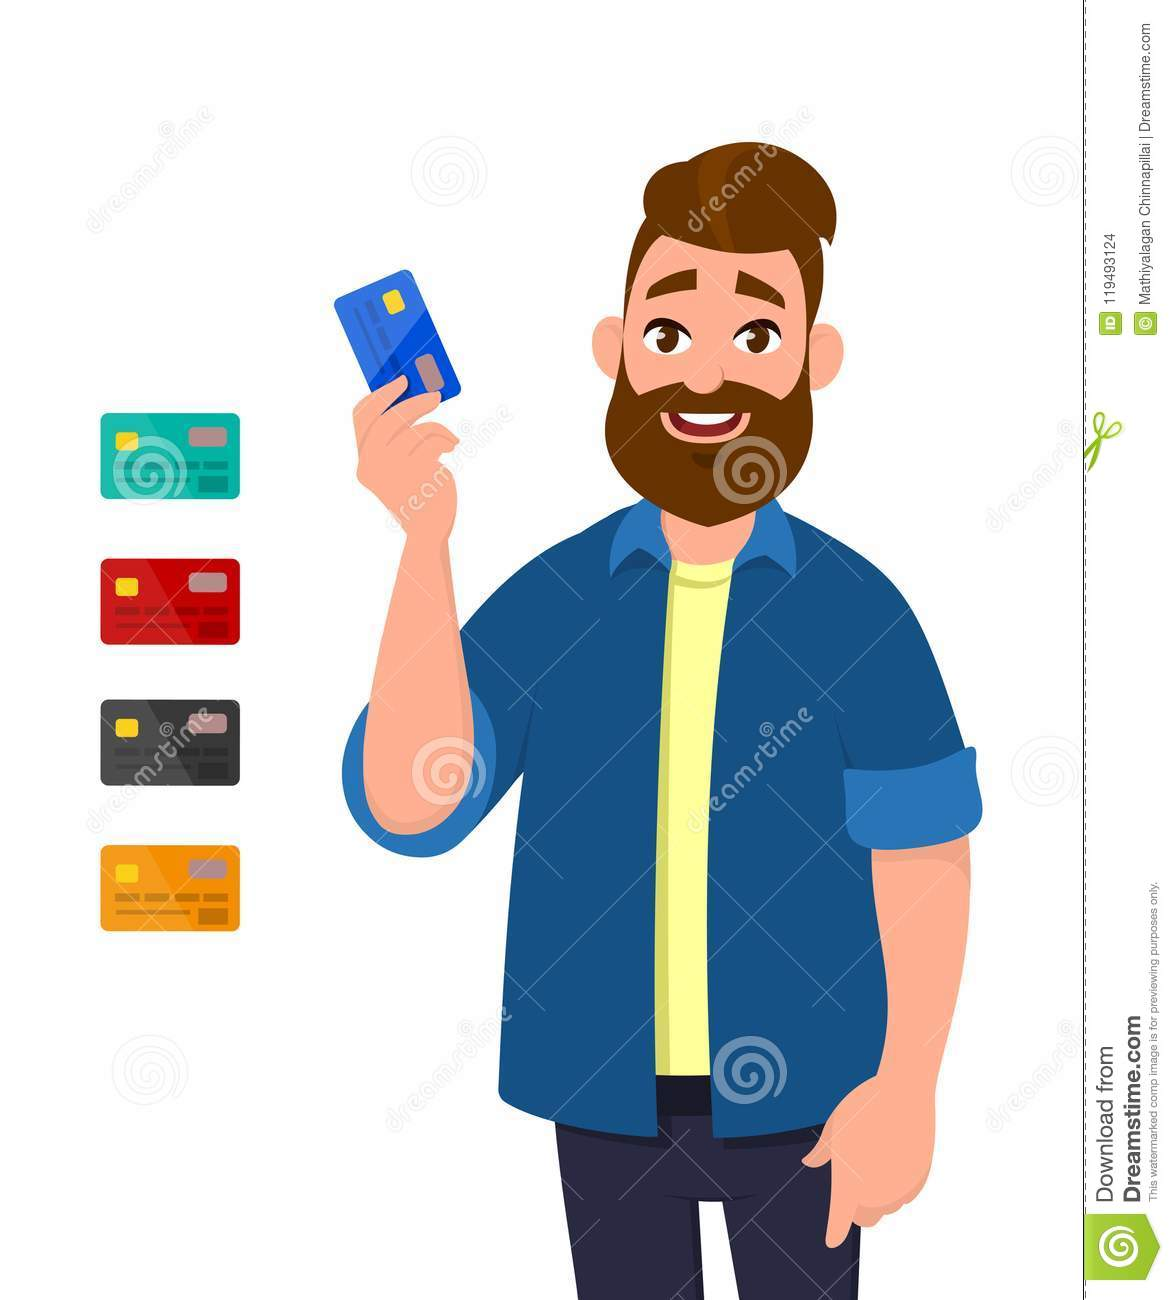 Man showing/holding credit/debit card. Digital transaction payment, business and finance, wireless transaction concept.